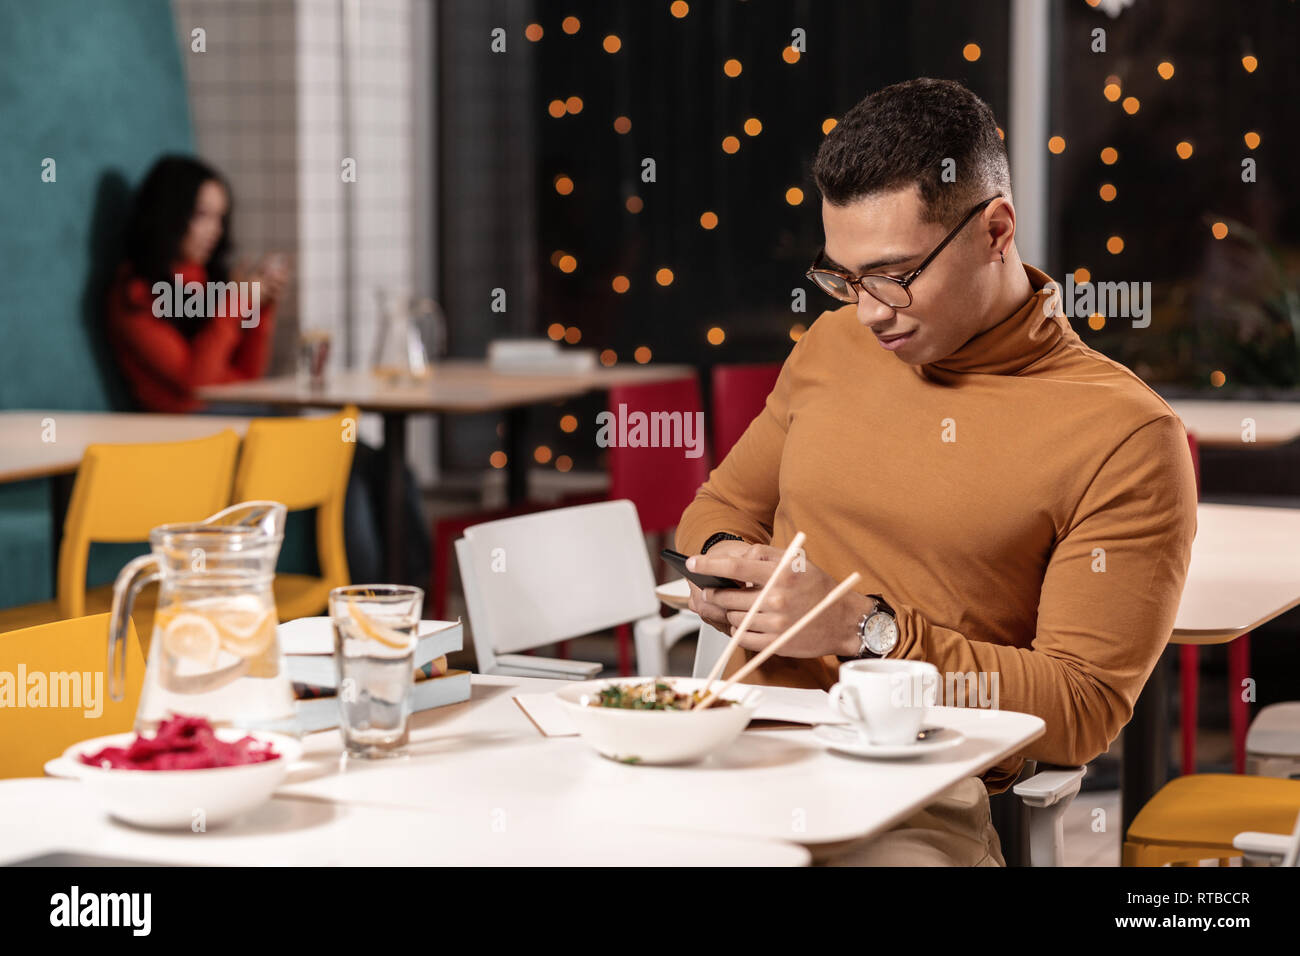 Man refusing to eat ordered dinner and chatting in the smartphone while sitting. - Stock Image